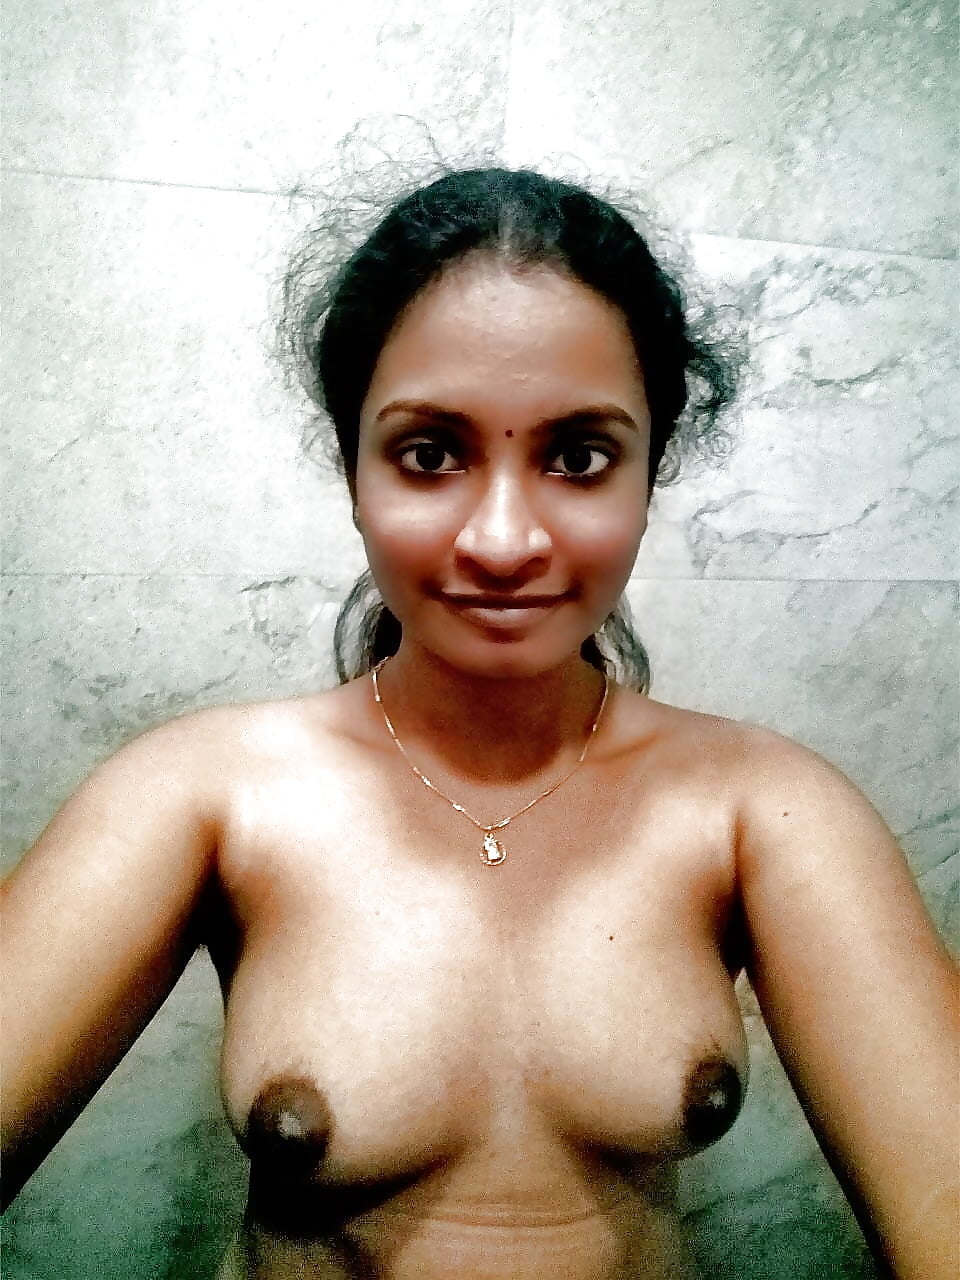 Tamil wild girls nude photos — pic 12